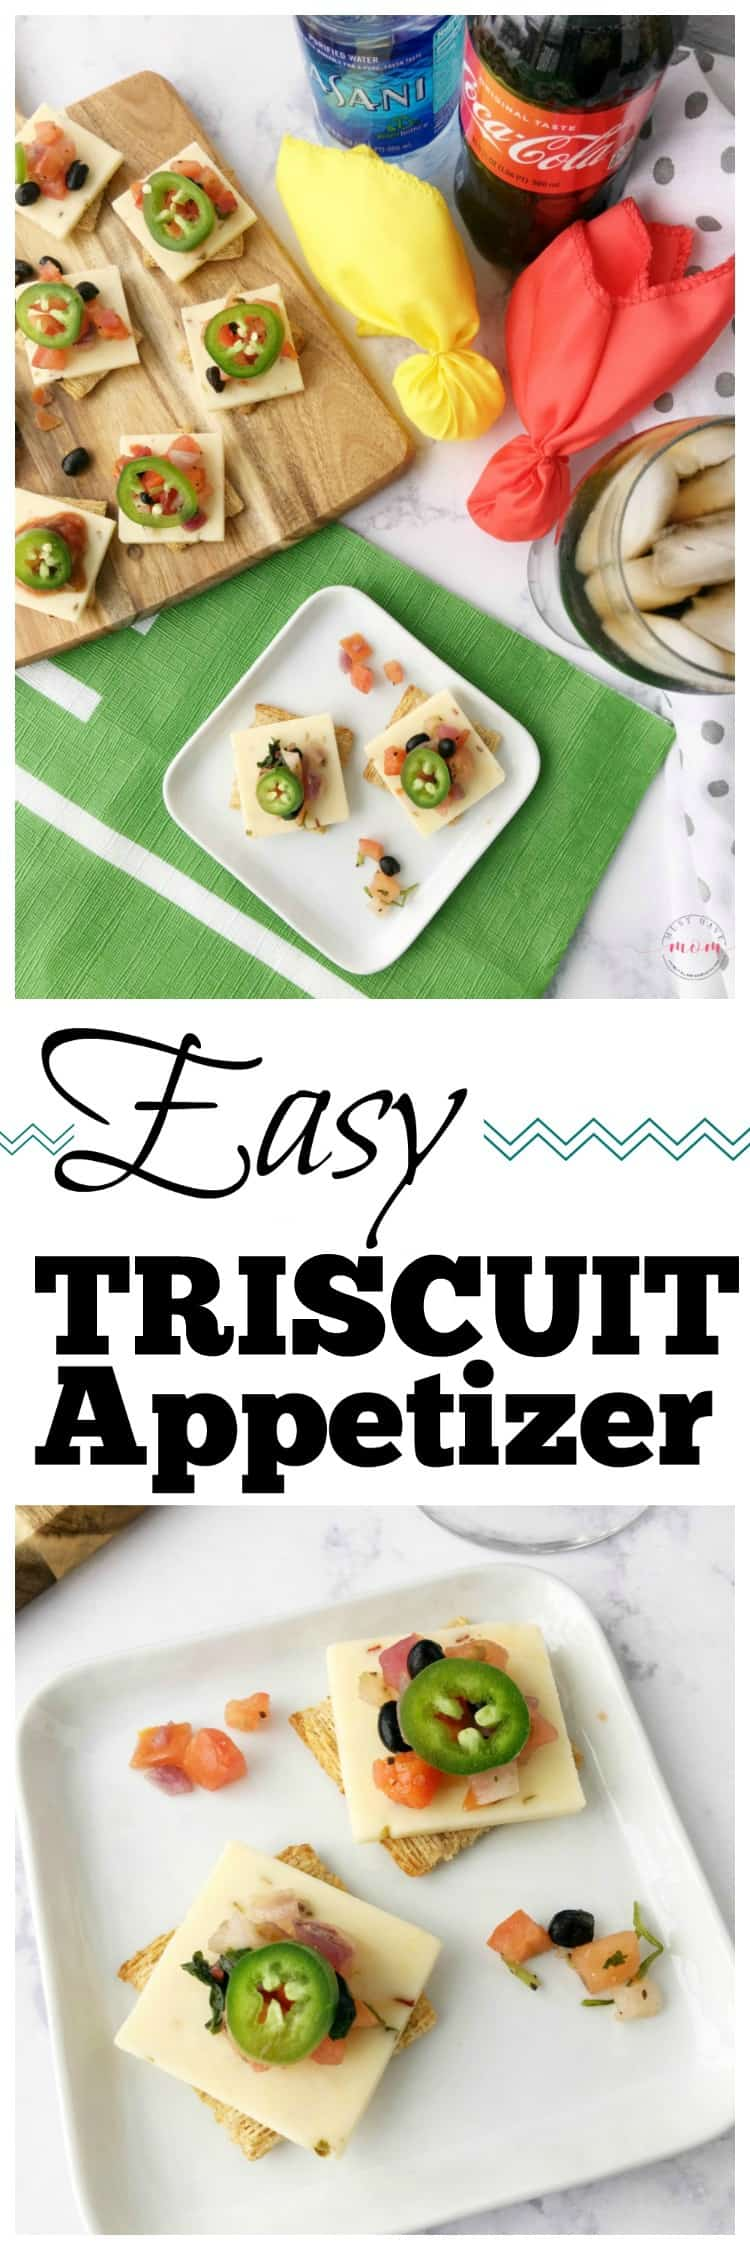 Easy Triscuit appetizer recipe for game day! Great football party food or tailgate food.